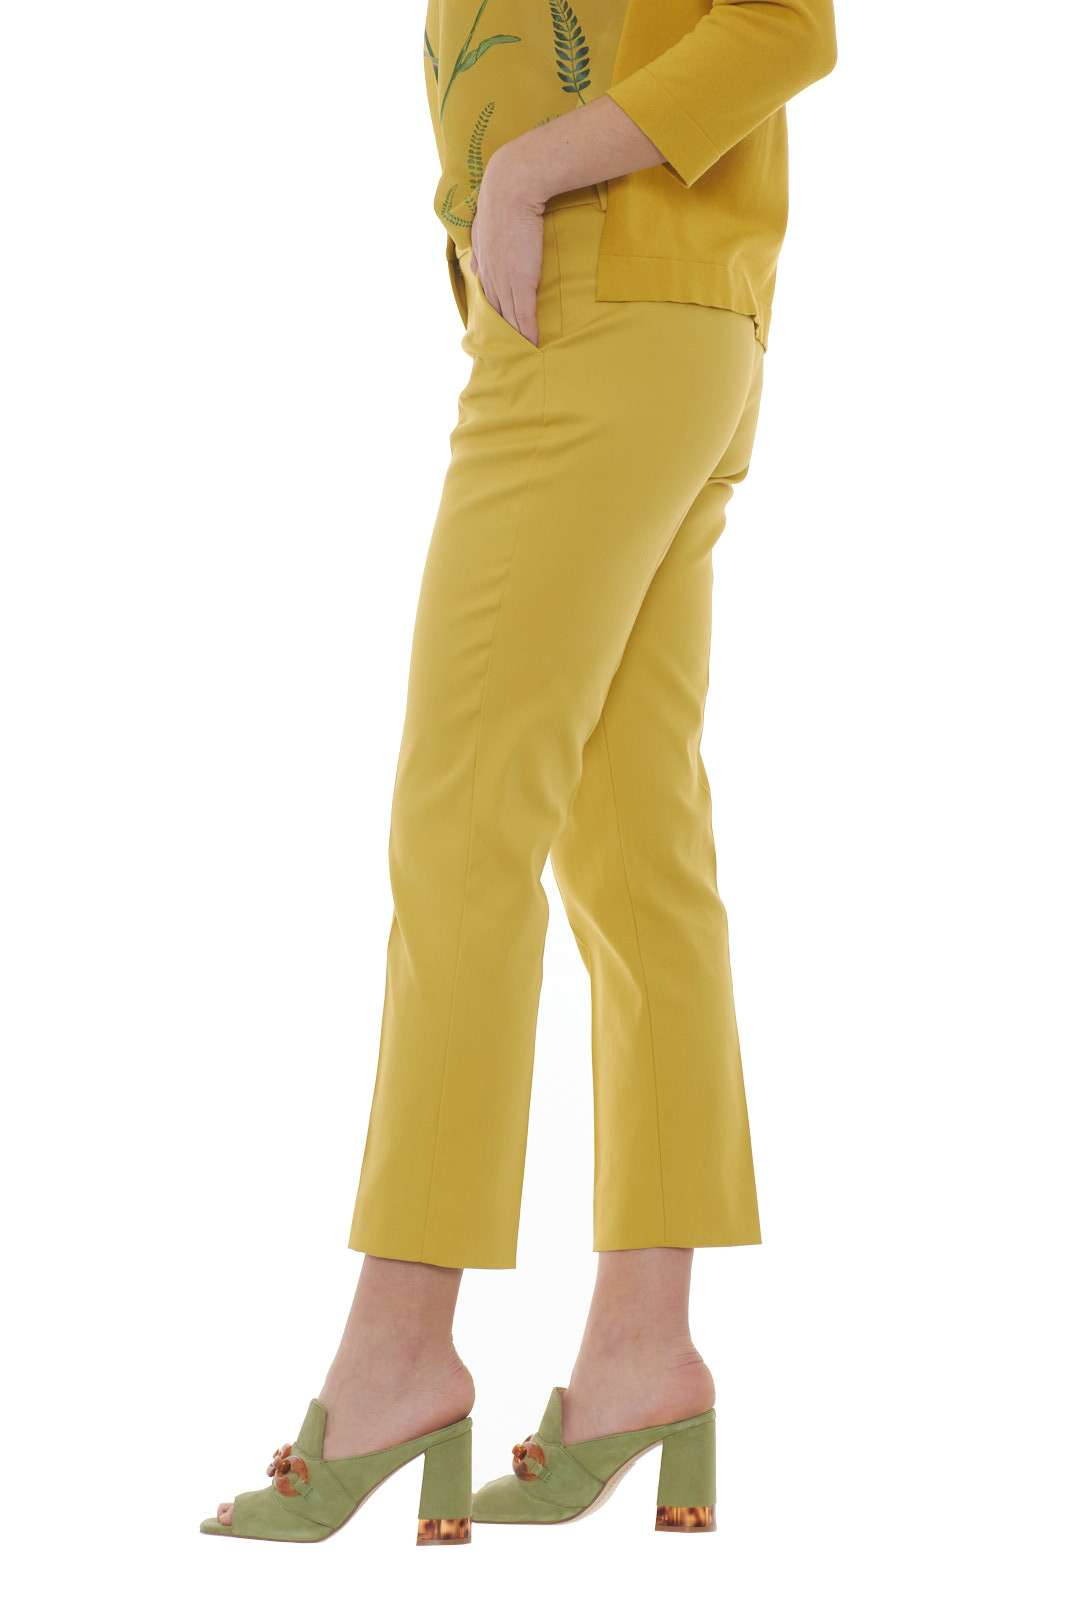 https://www.parmax.com/media/catalog/product/a/i/PE-outlet_parmax-pantaloni-donna-MaxMara-51310107-B.jpg